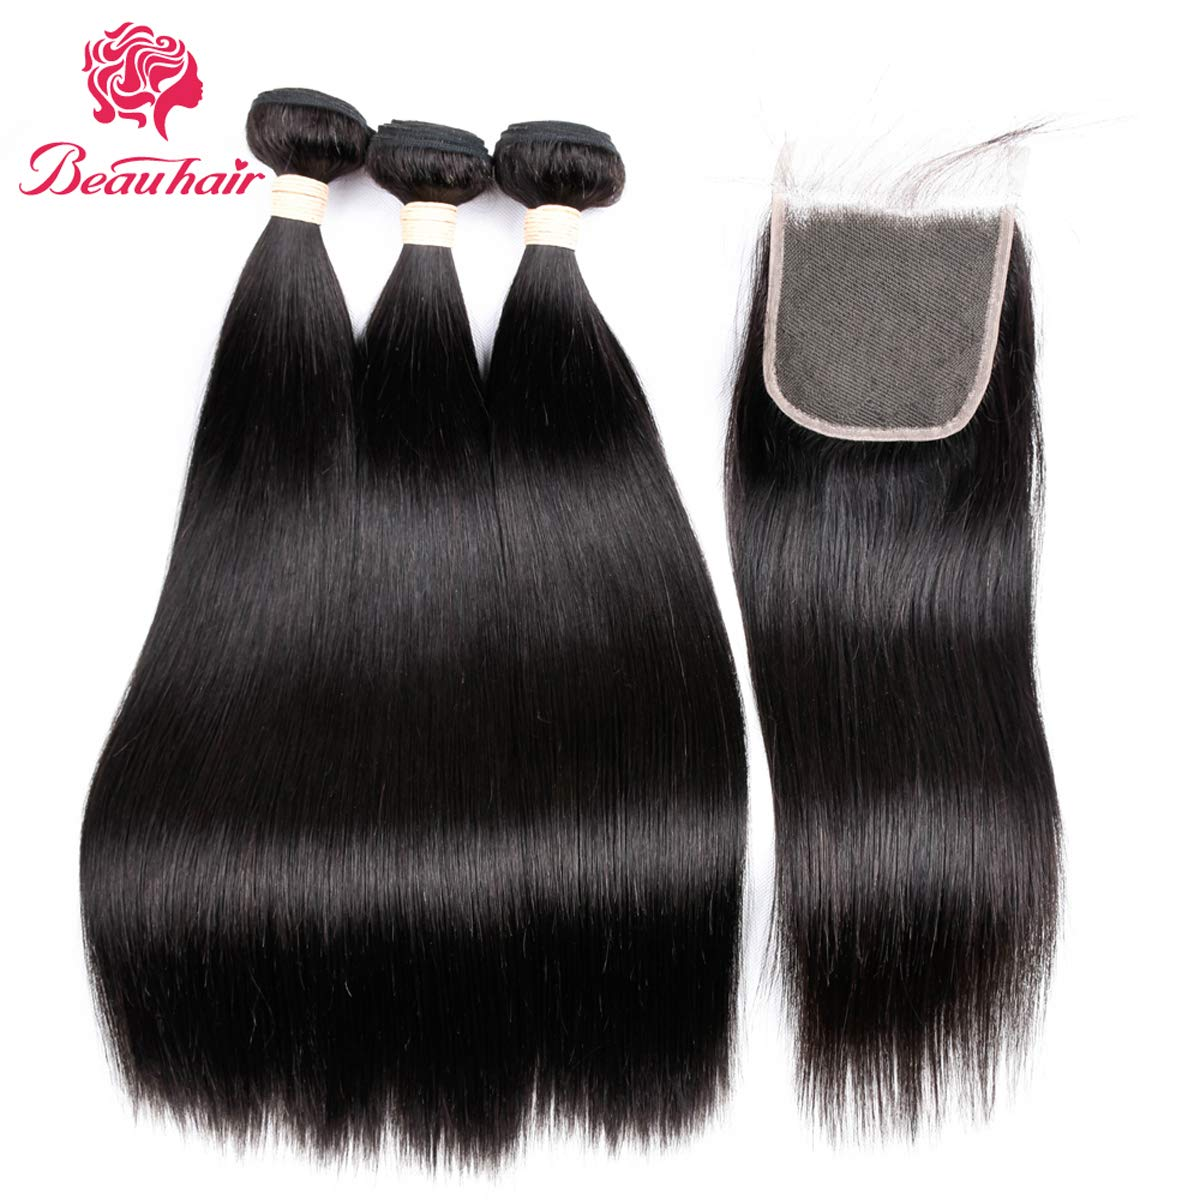 "Brazilian Hair 7A Virgin Human Hair 3 Bundles With (4x 4) Lace Closure Straight Wave Weft 100% Unprocessed Real Human Hair Extensions Natural Color (18 20 22+18"" Closure)"